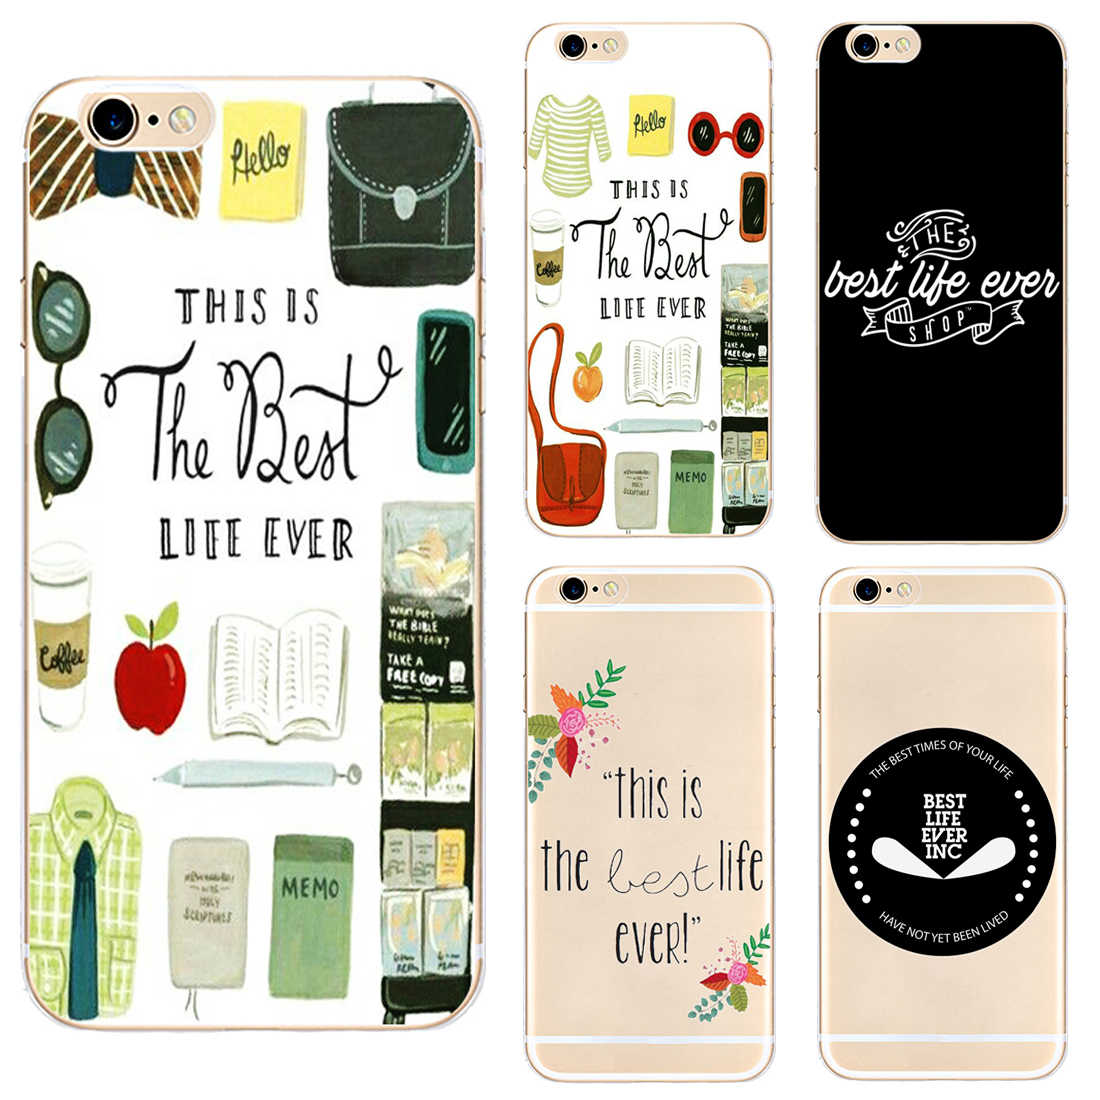 The Best Life Ever Hard Clear Phone Case Cover For Samsung s8 s9plus S6 S7Edge S5 for iPhone 7 6s 8plus 5s 5c 4 X XS XR XSMAX